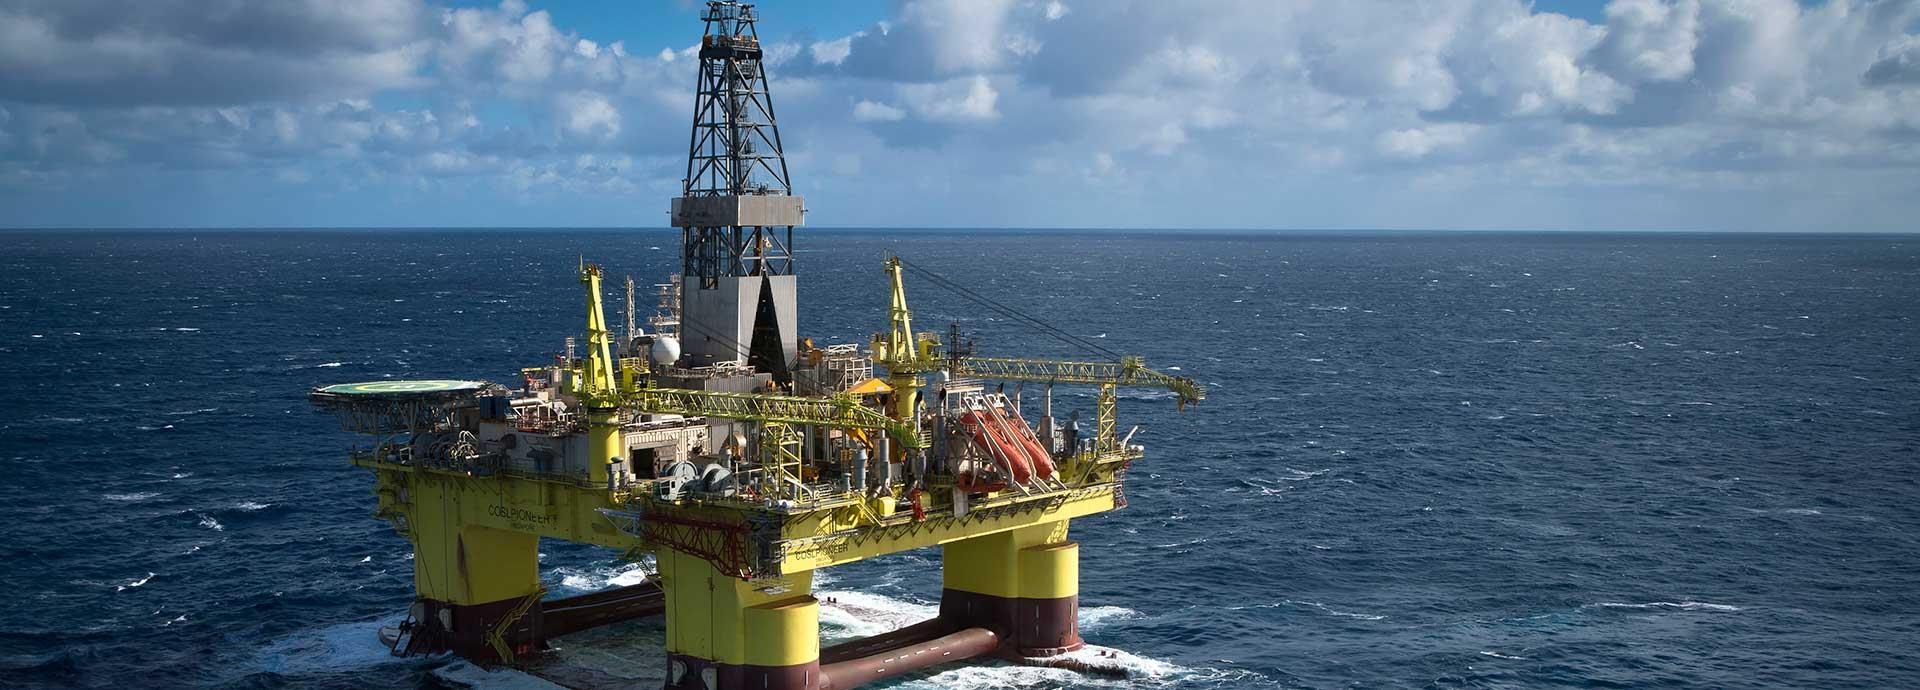 Safety first is key to success in the tight offshore drilling market